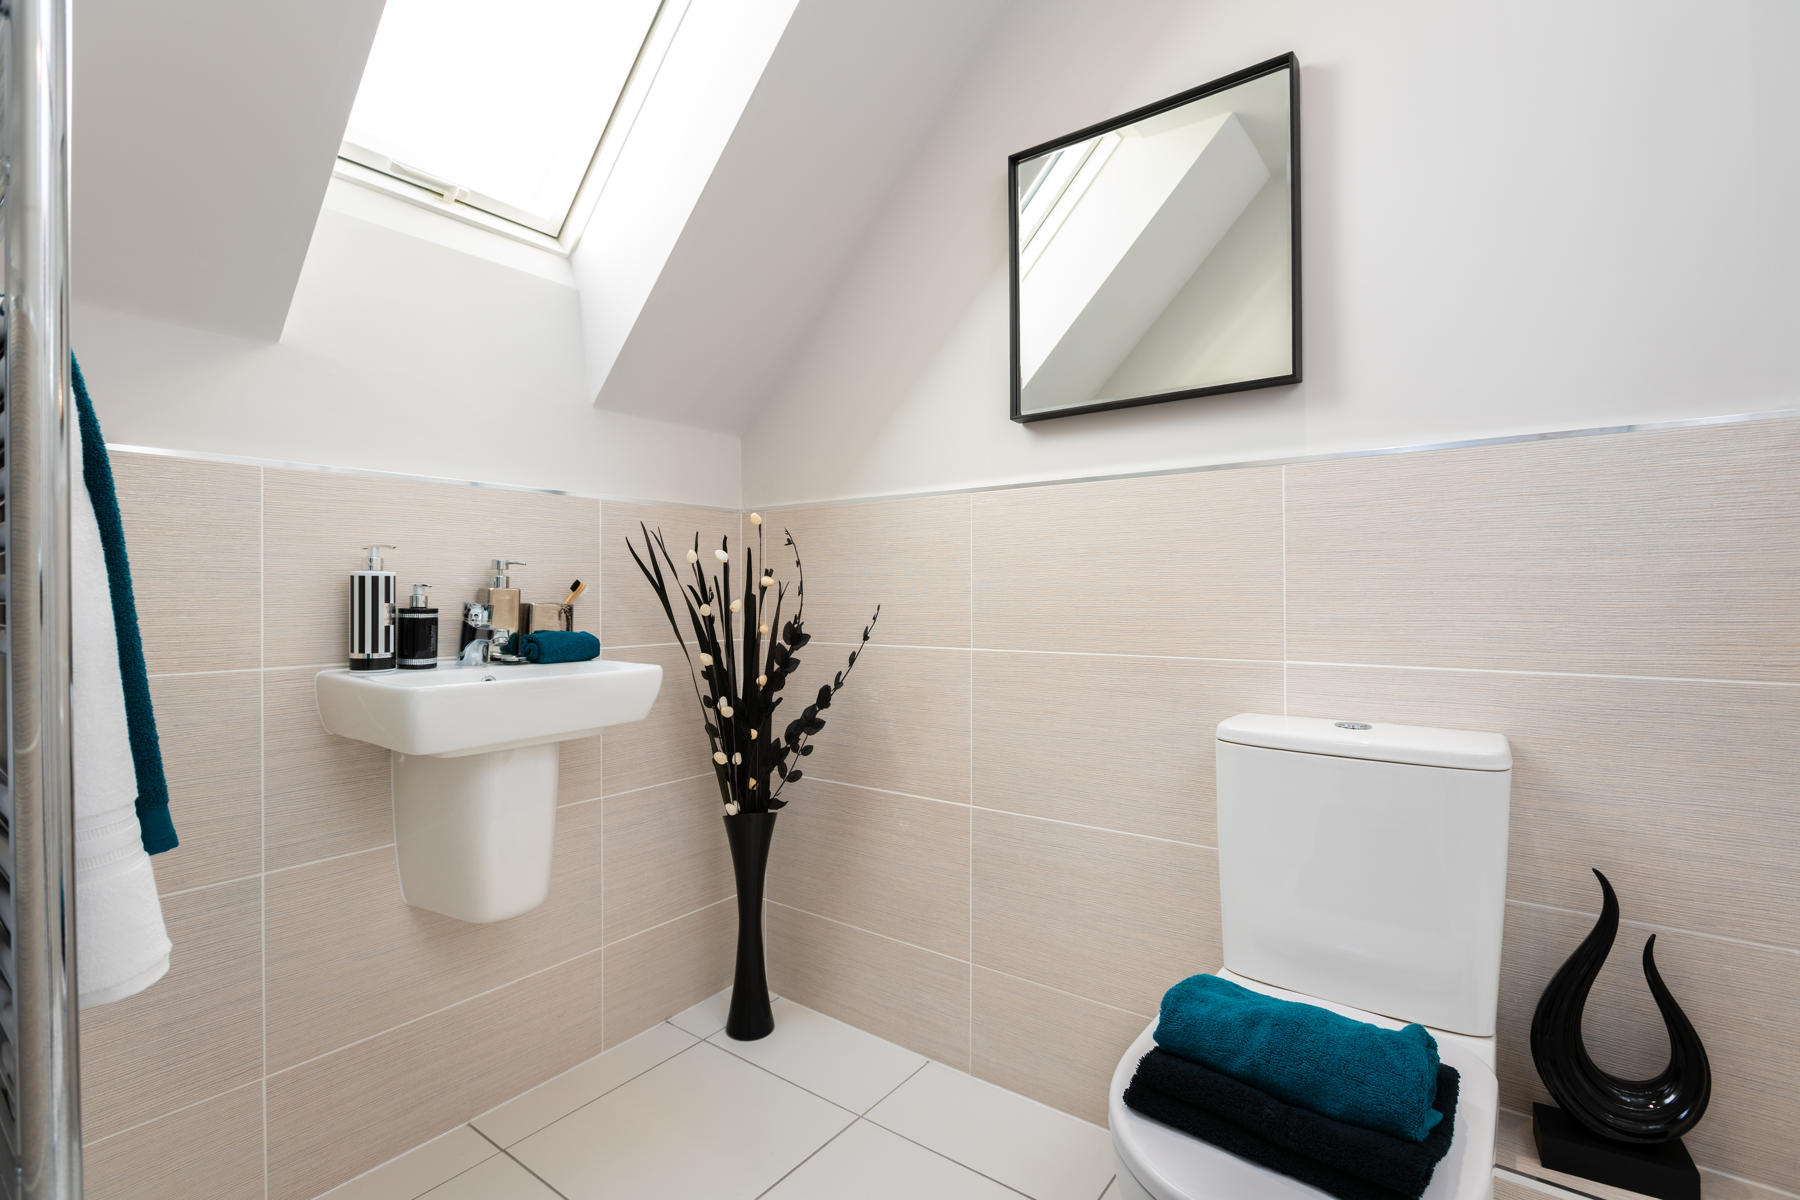 TW YO_Crosfield Park_1645_Alton G_En-suite_1800x1200